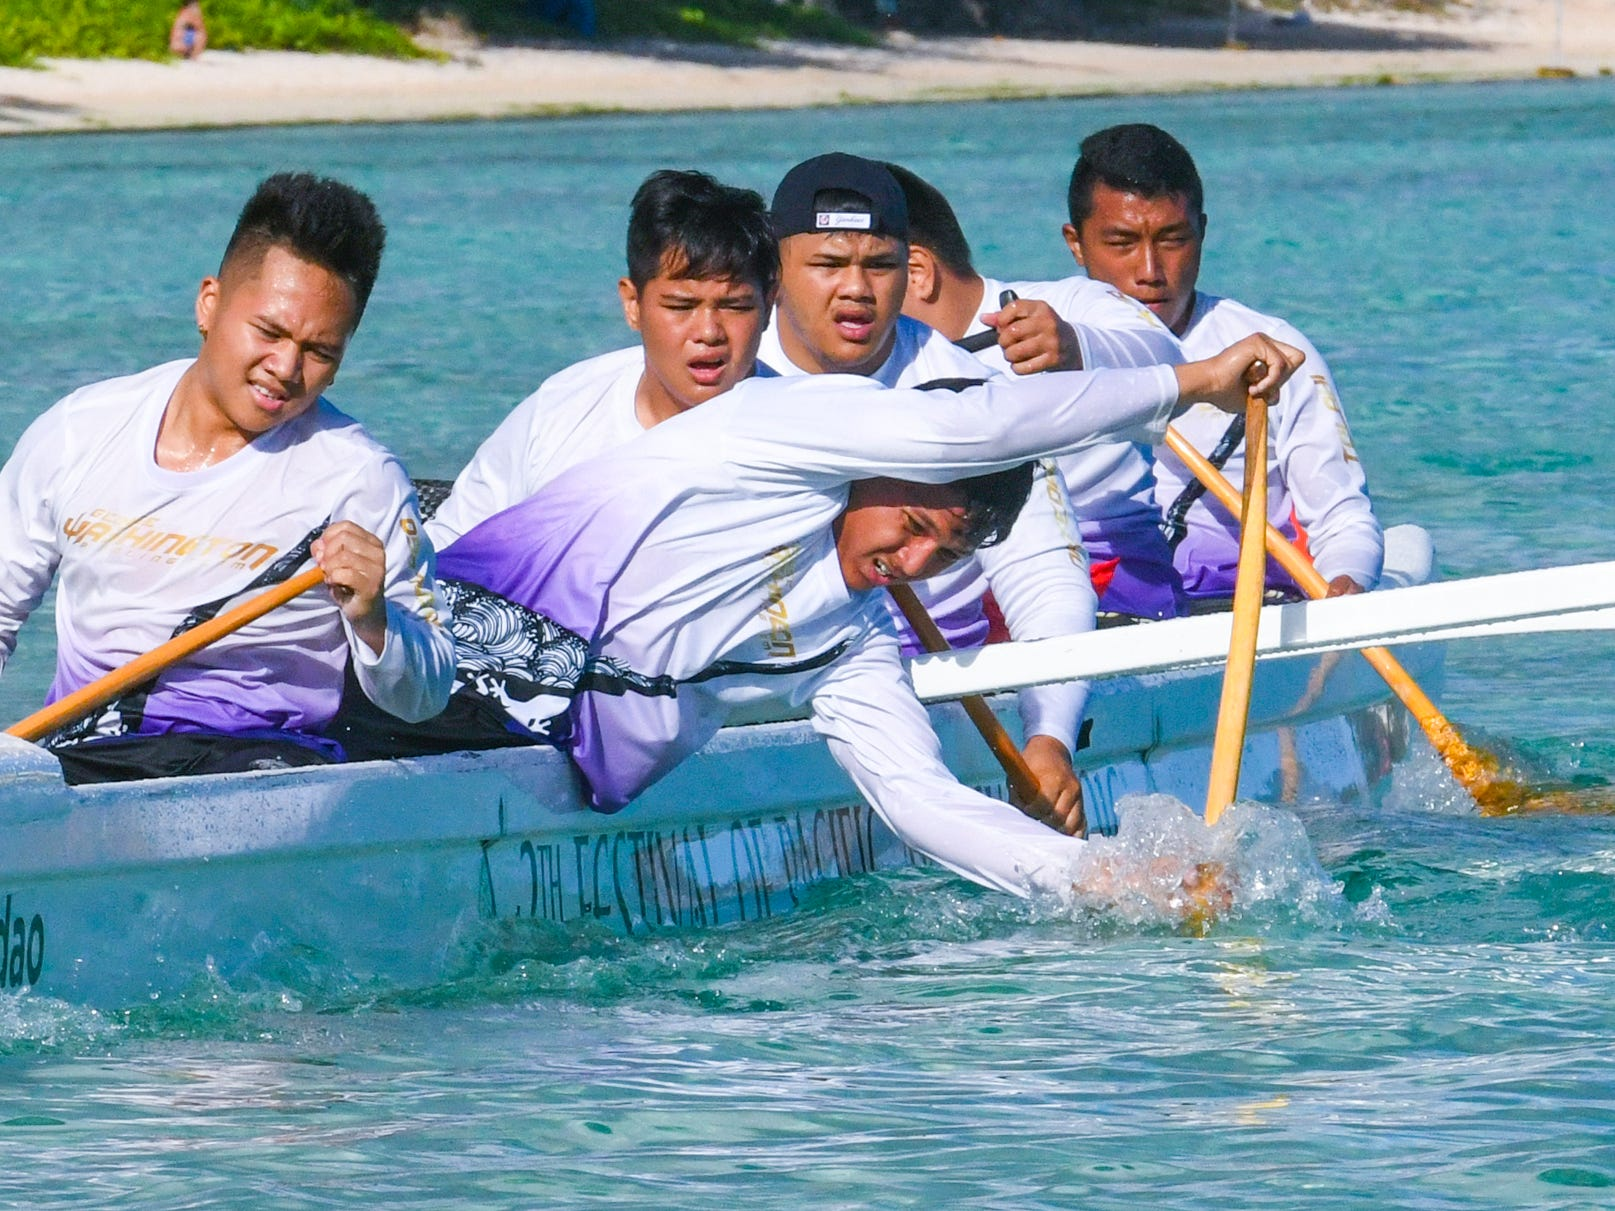 Paddlers from George Washington High School push their canoe through the waters off Matapang Beach as they compete against other teams in IIAAG Paddling competition preliminary races in Tumon on Saturday, May 11, 2019.